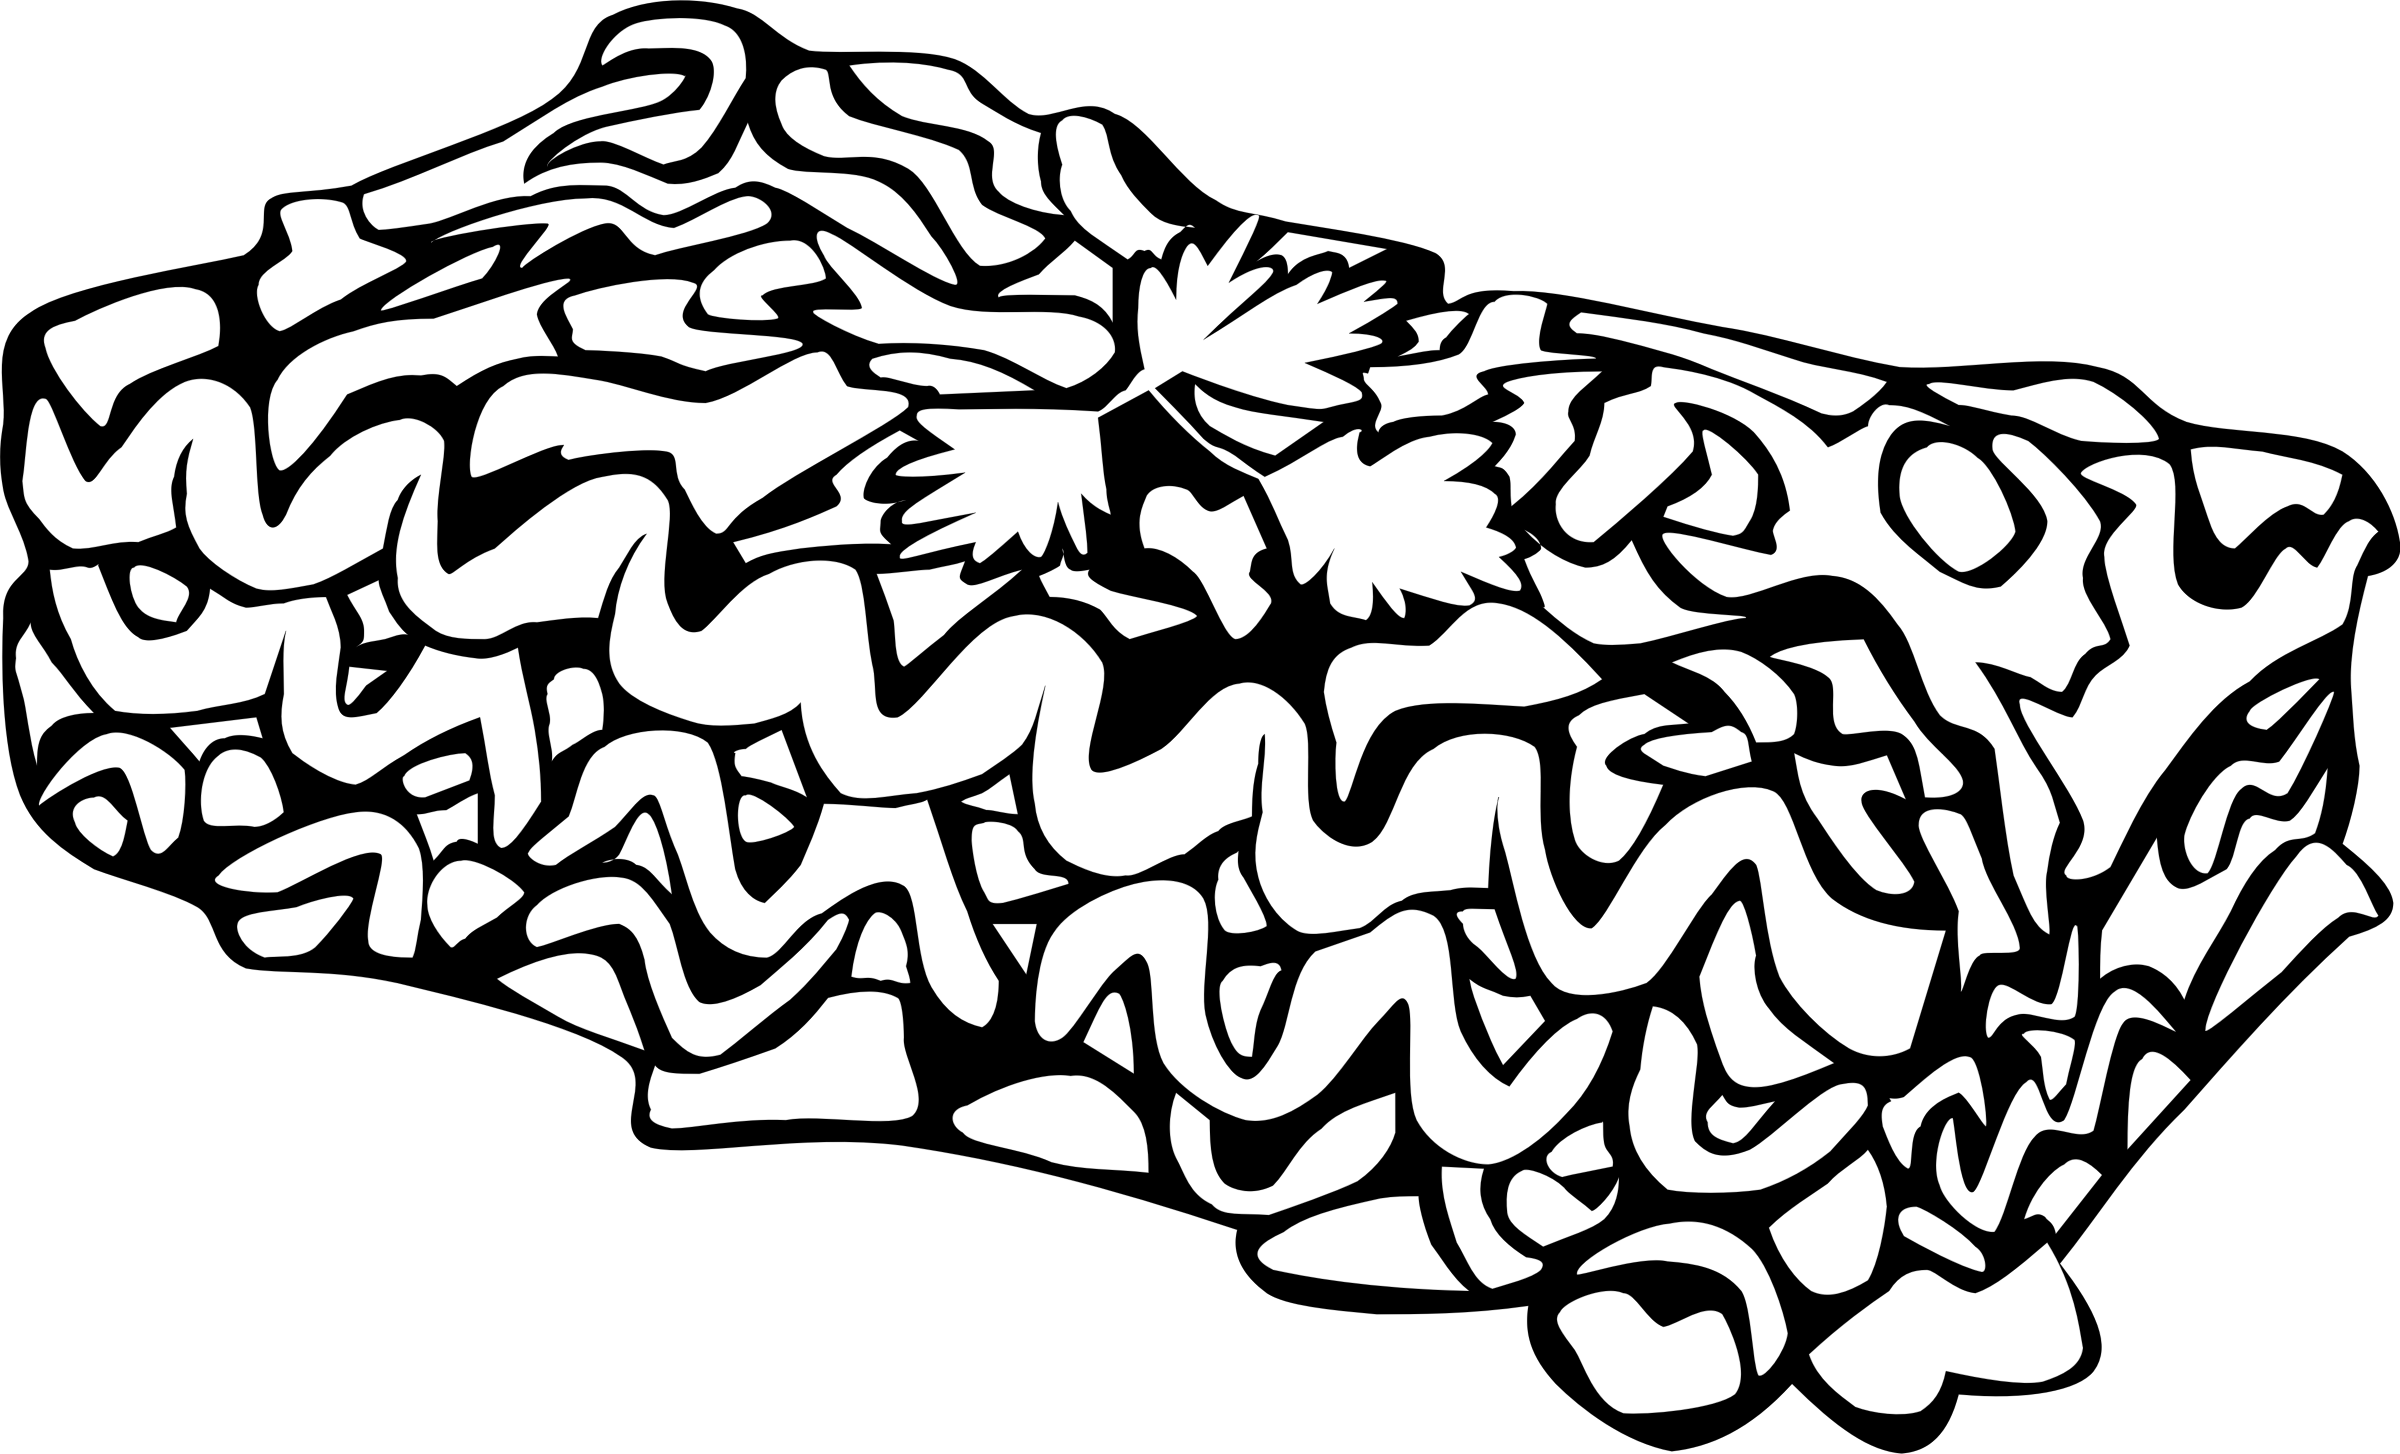 Lasagna drawing. Clipart fast food lunch